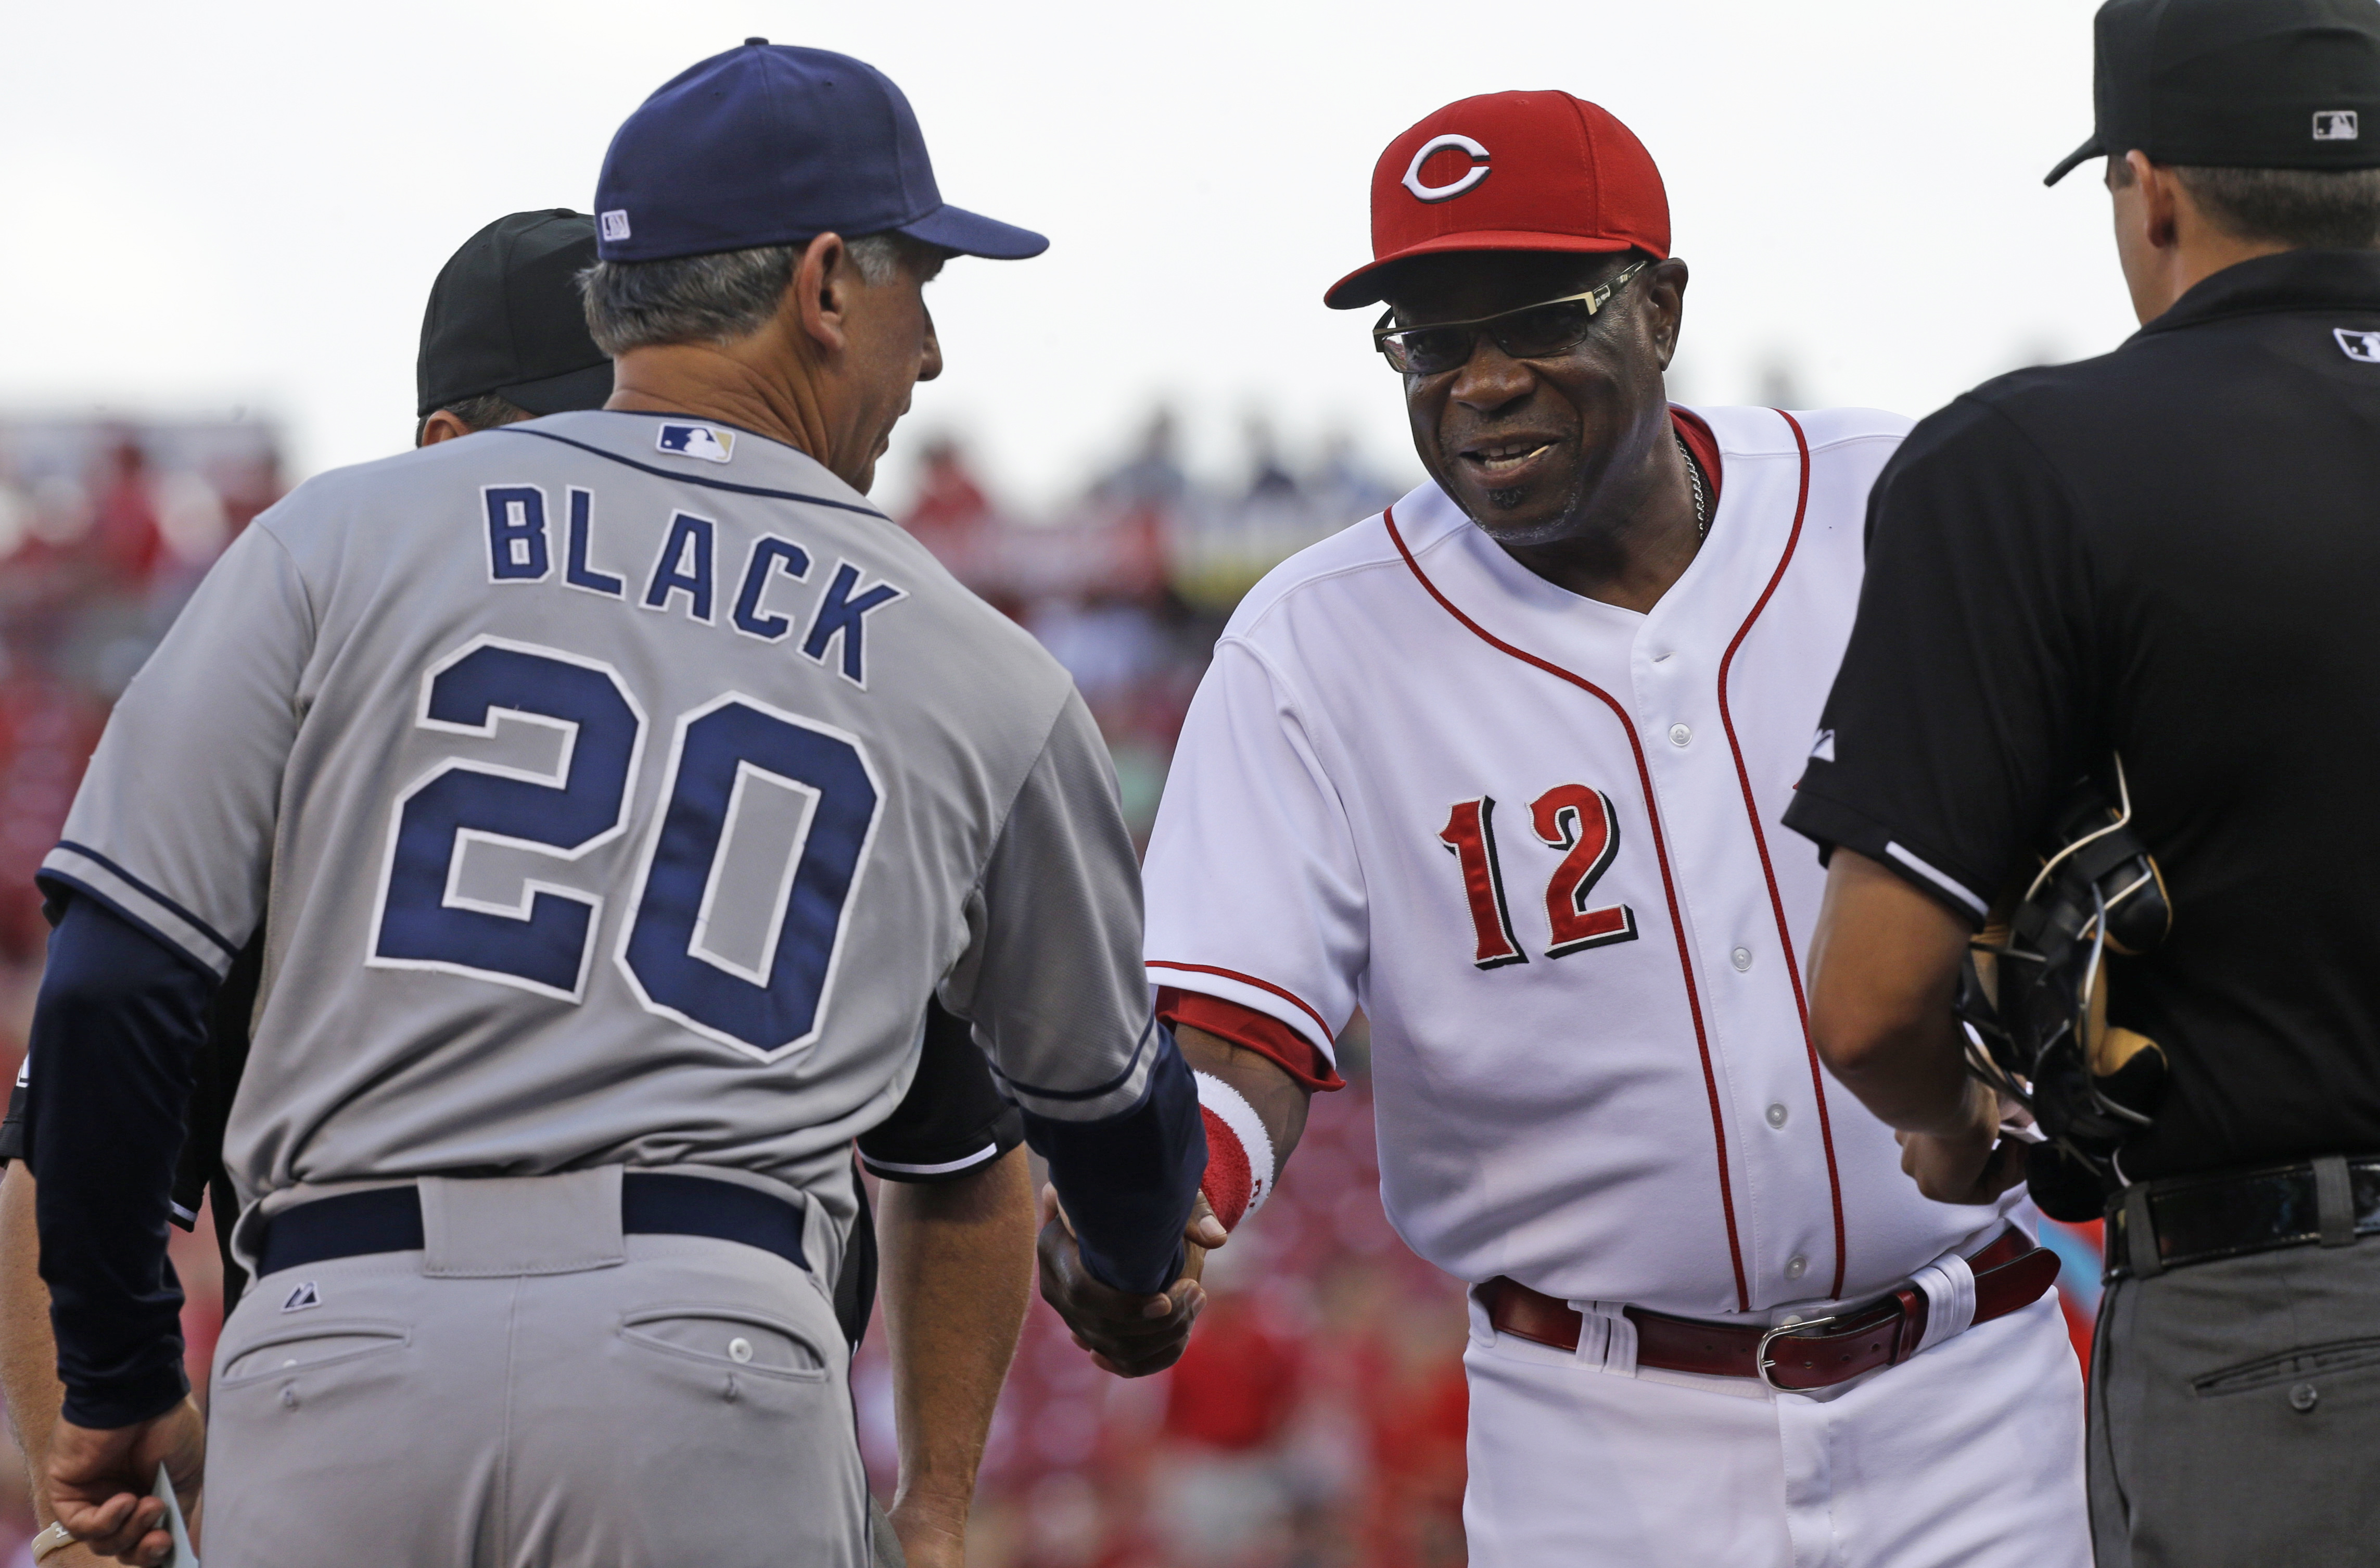 New Nationals manager Baker: Not the first choice, but the right one